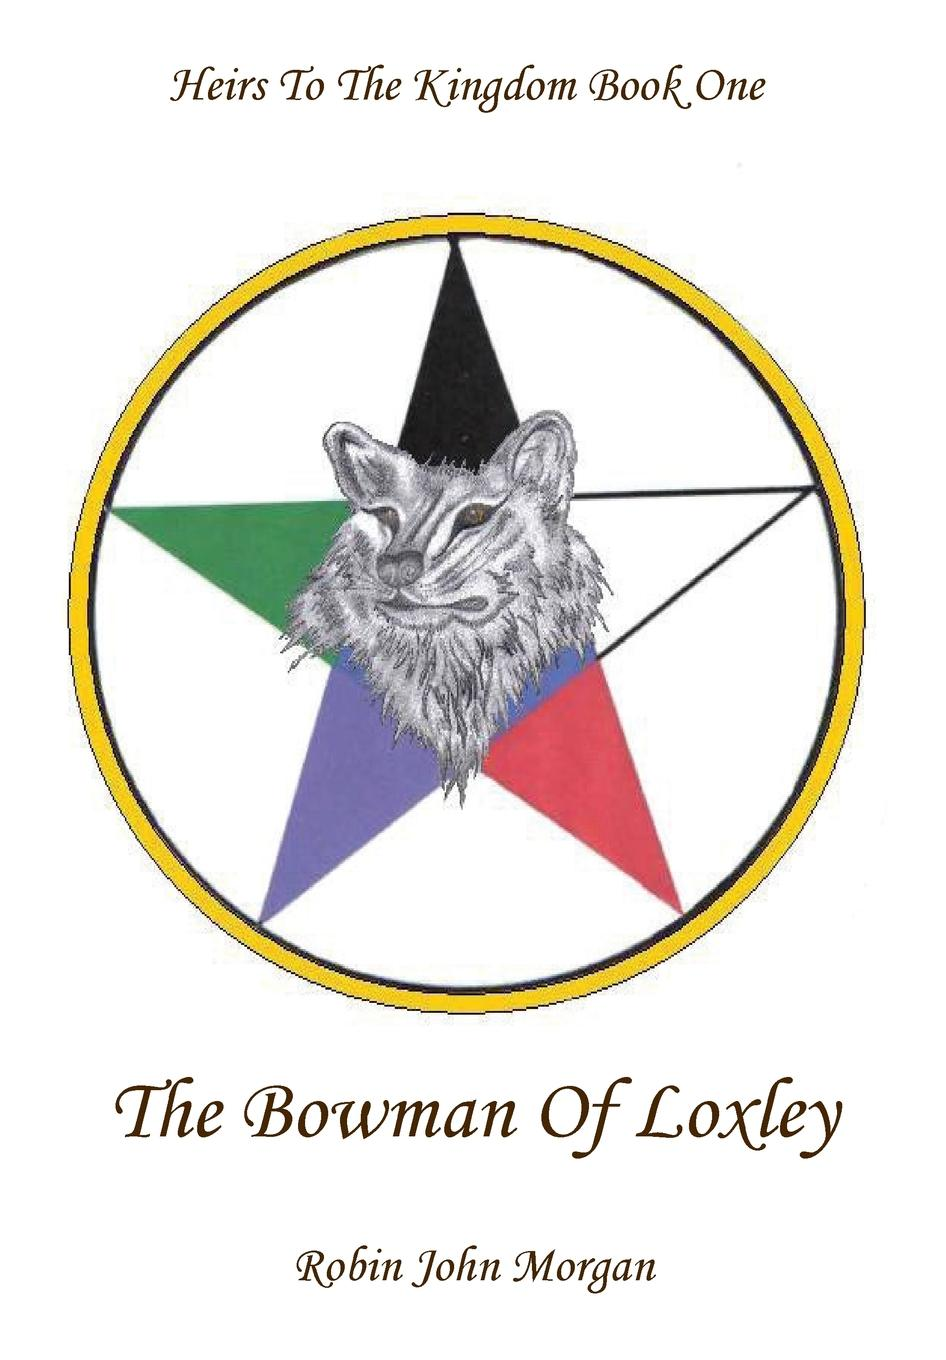 Heirs to the kingdom part one : The Bowman of Loxley